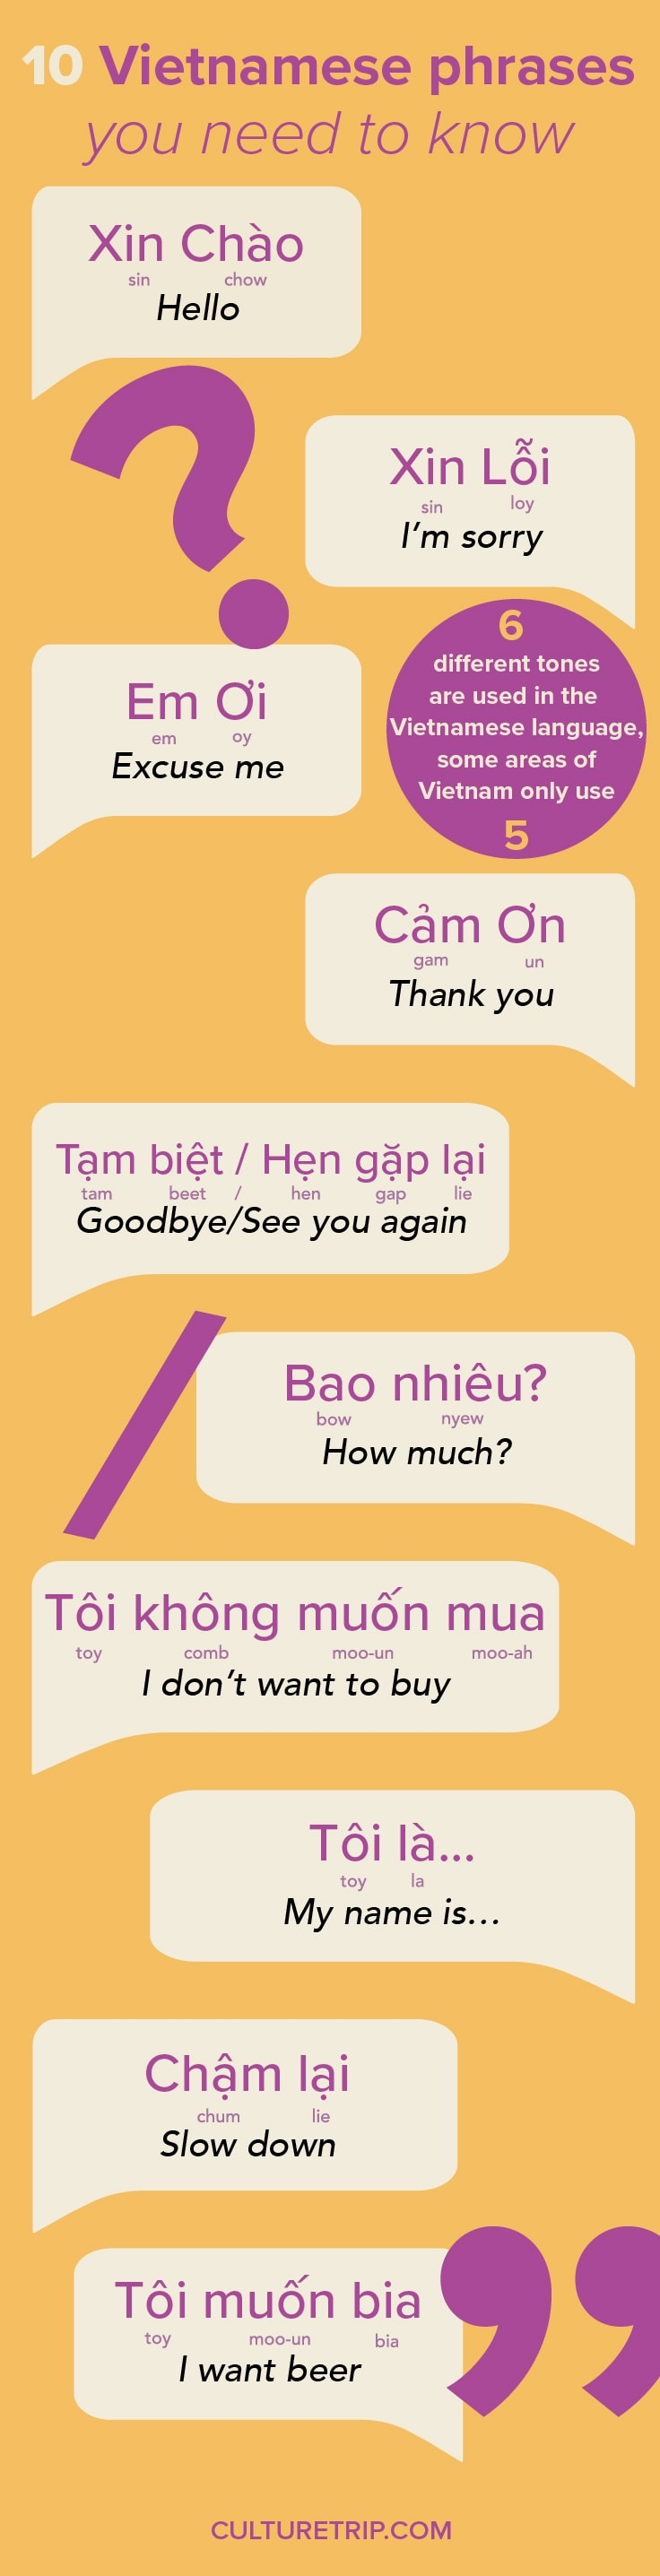 Vietnamese phrases